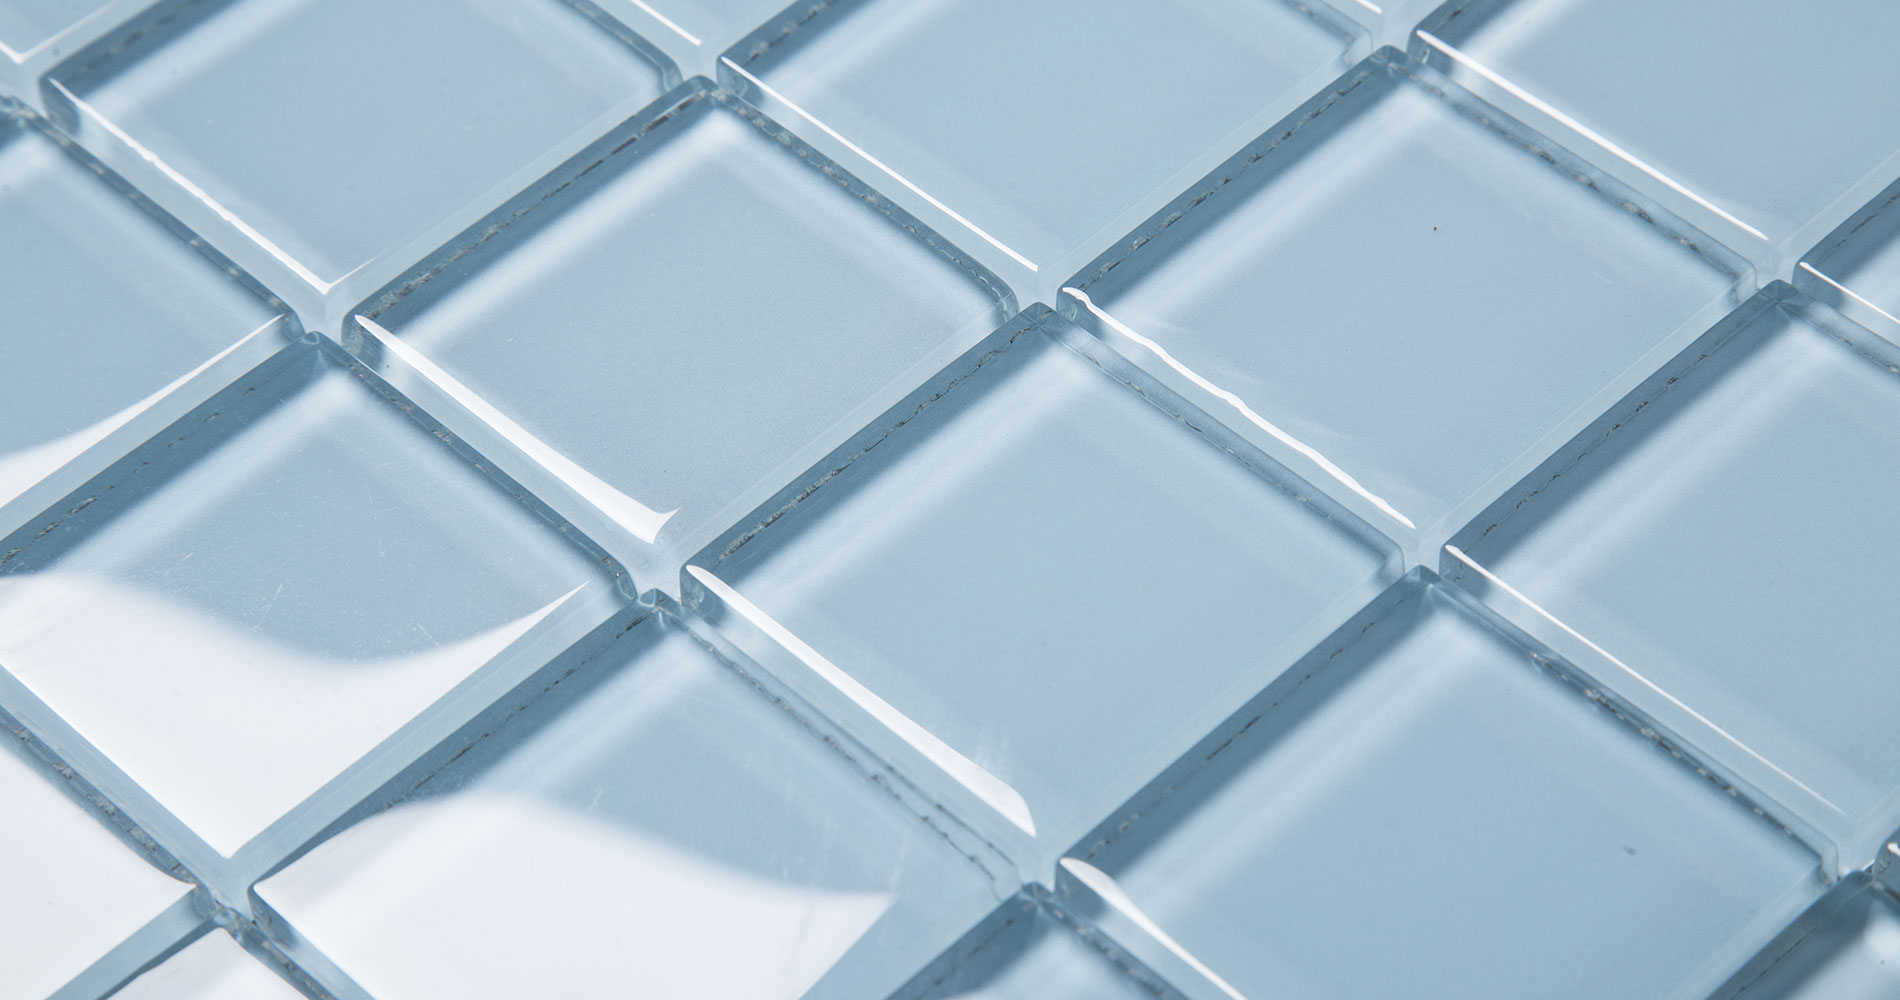 Century-mosaic-Crystal-Glass-48mm-Square-Mosaic-Tile-Collection-6